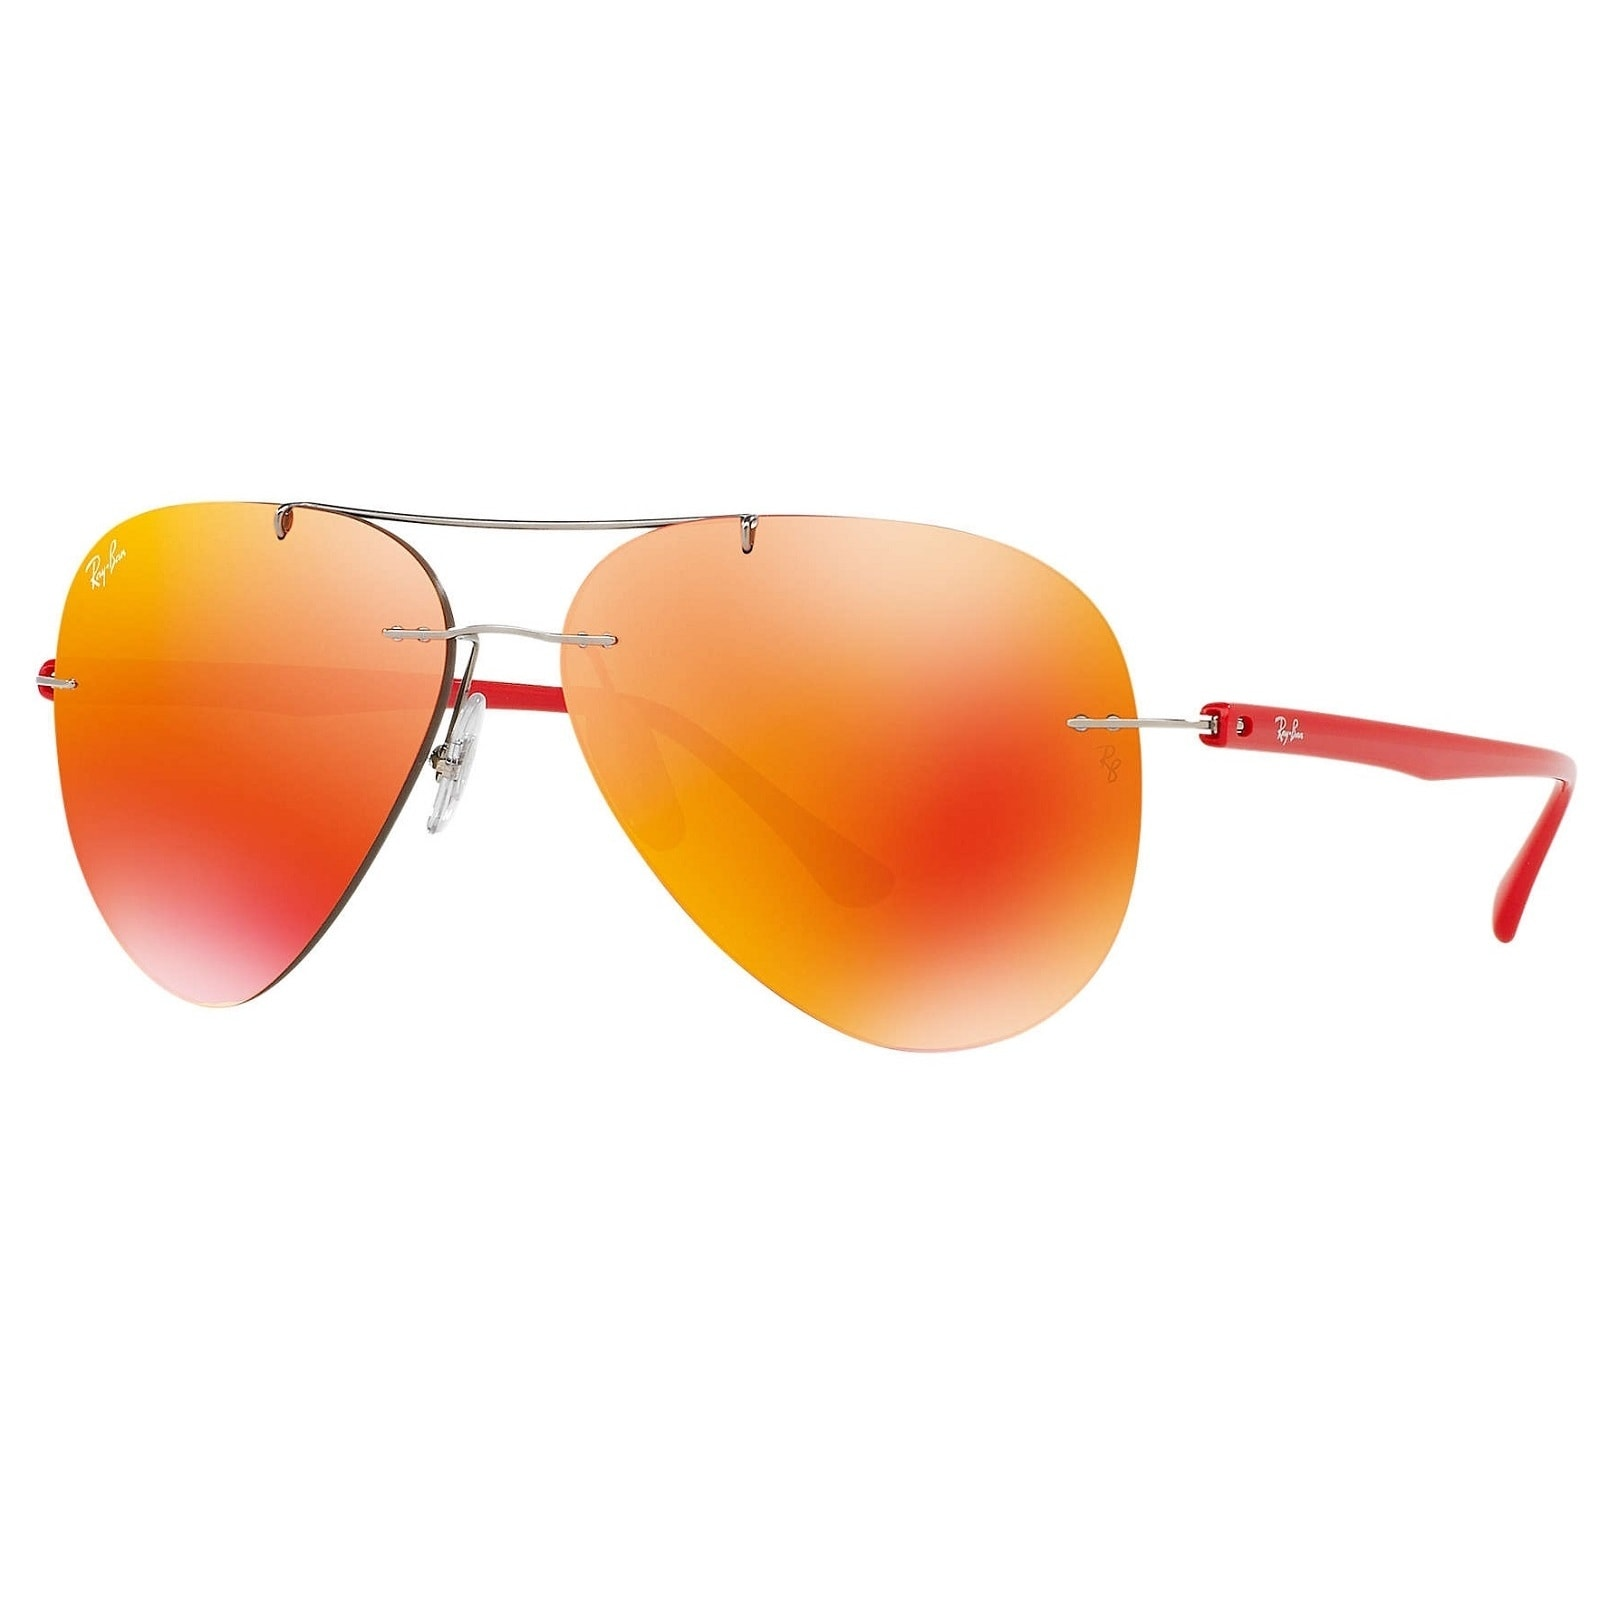 ec1a393ef1c Shop Ray-Ban RB8058 159 6Q Men s Rimless Rimless Orange Mirror Lens  Sunglasses - Free Shipping Today - Overstock - 15287974